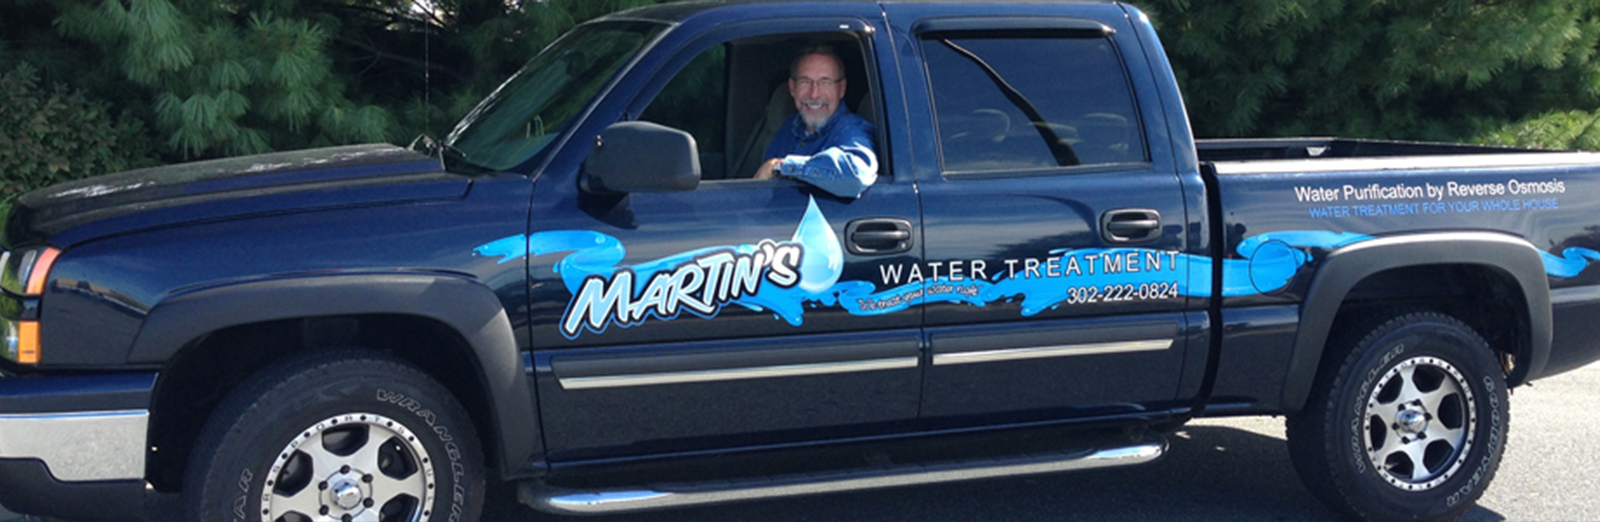 Martin's Water Treatment | Water Purification System | Dover DE